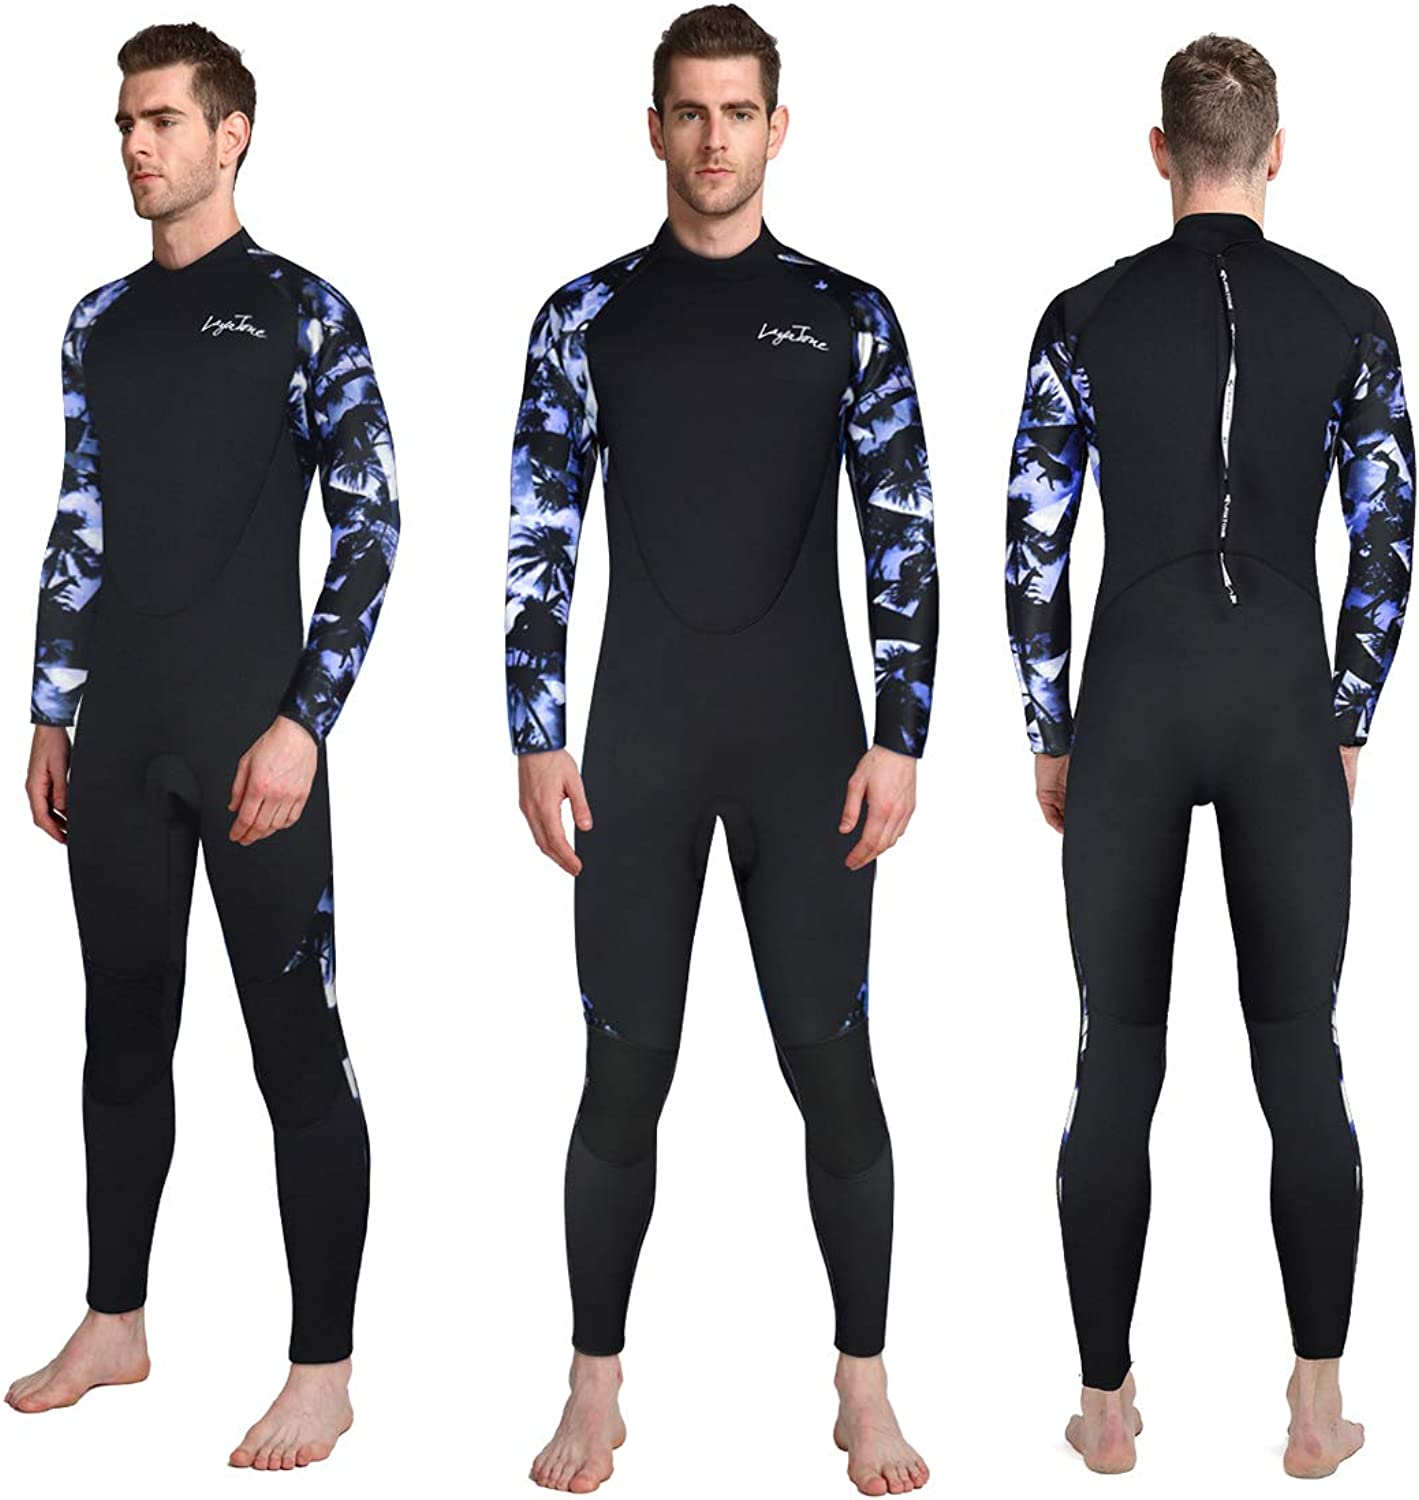 LayaTone Mens Wetsuits 3mm Neoprene Full Body Diving Suit for Scuba Diving Snorkeling Surfing Diving Swimming Kayaking Boating Fishing